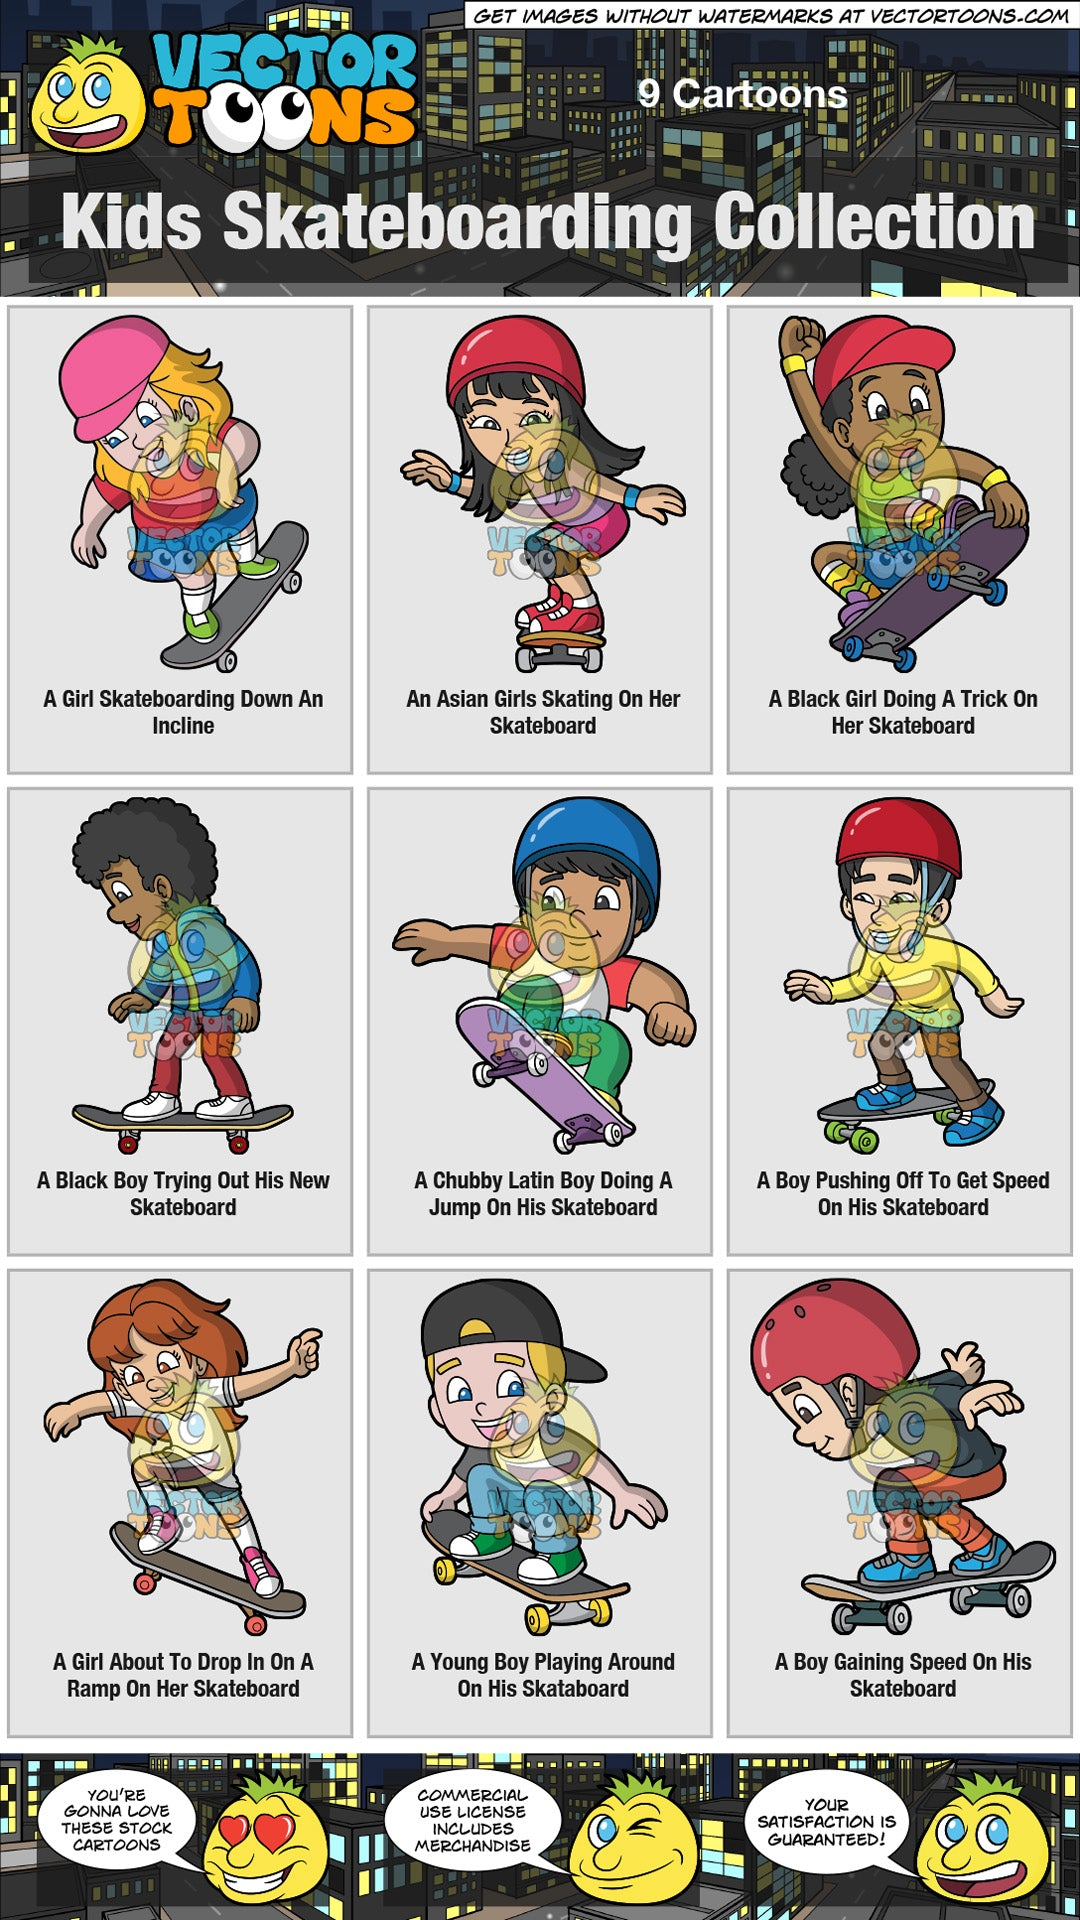 Kids Skateboarding Collection